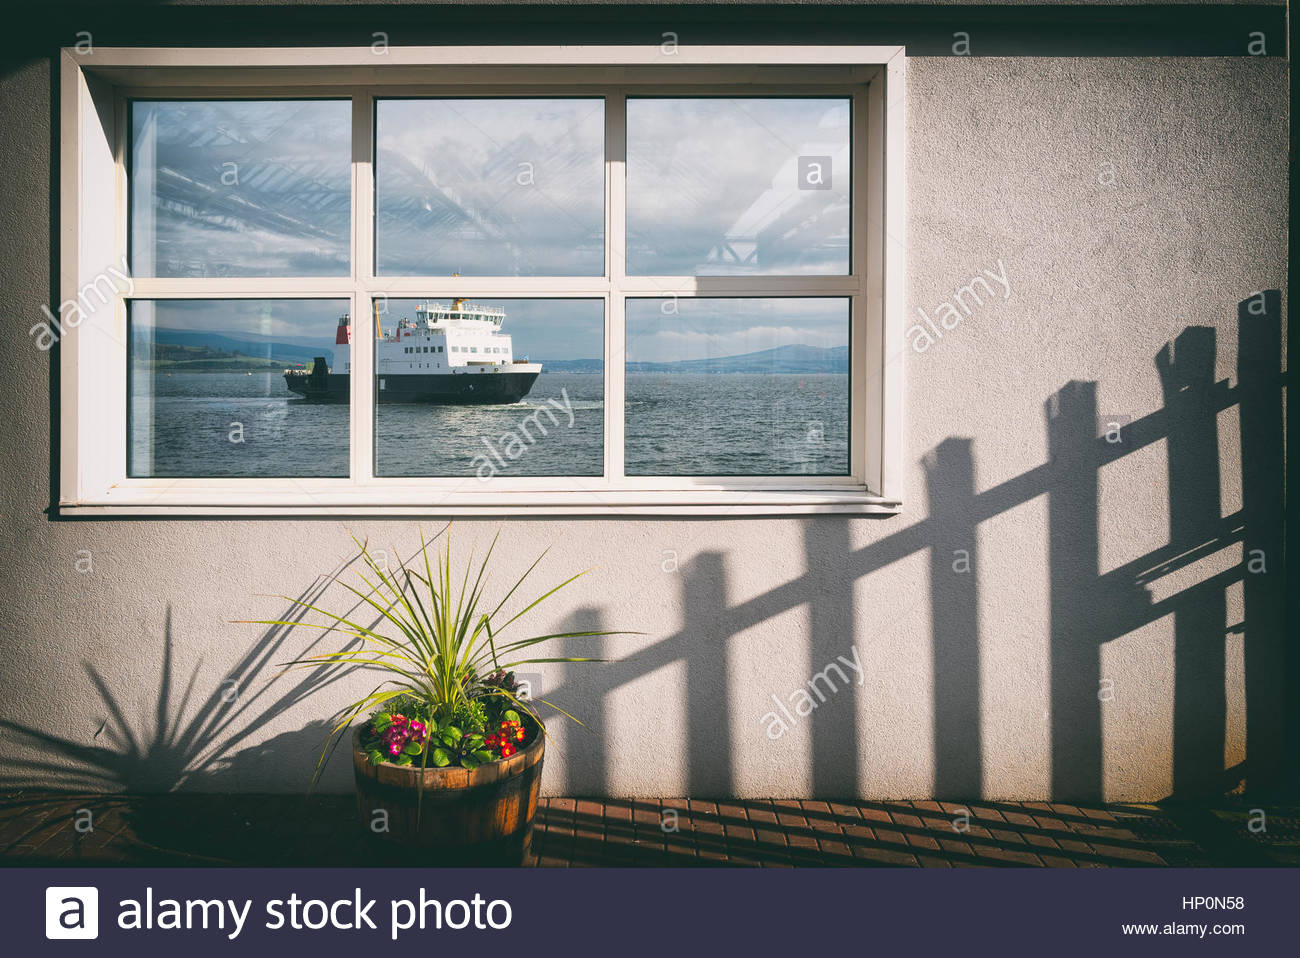 Window sea view fence shadow white wall ferry boat - Stock Image